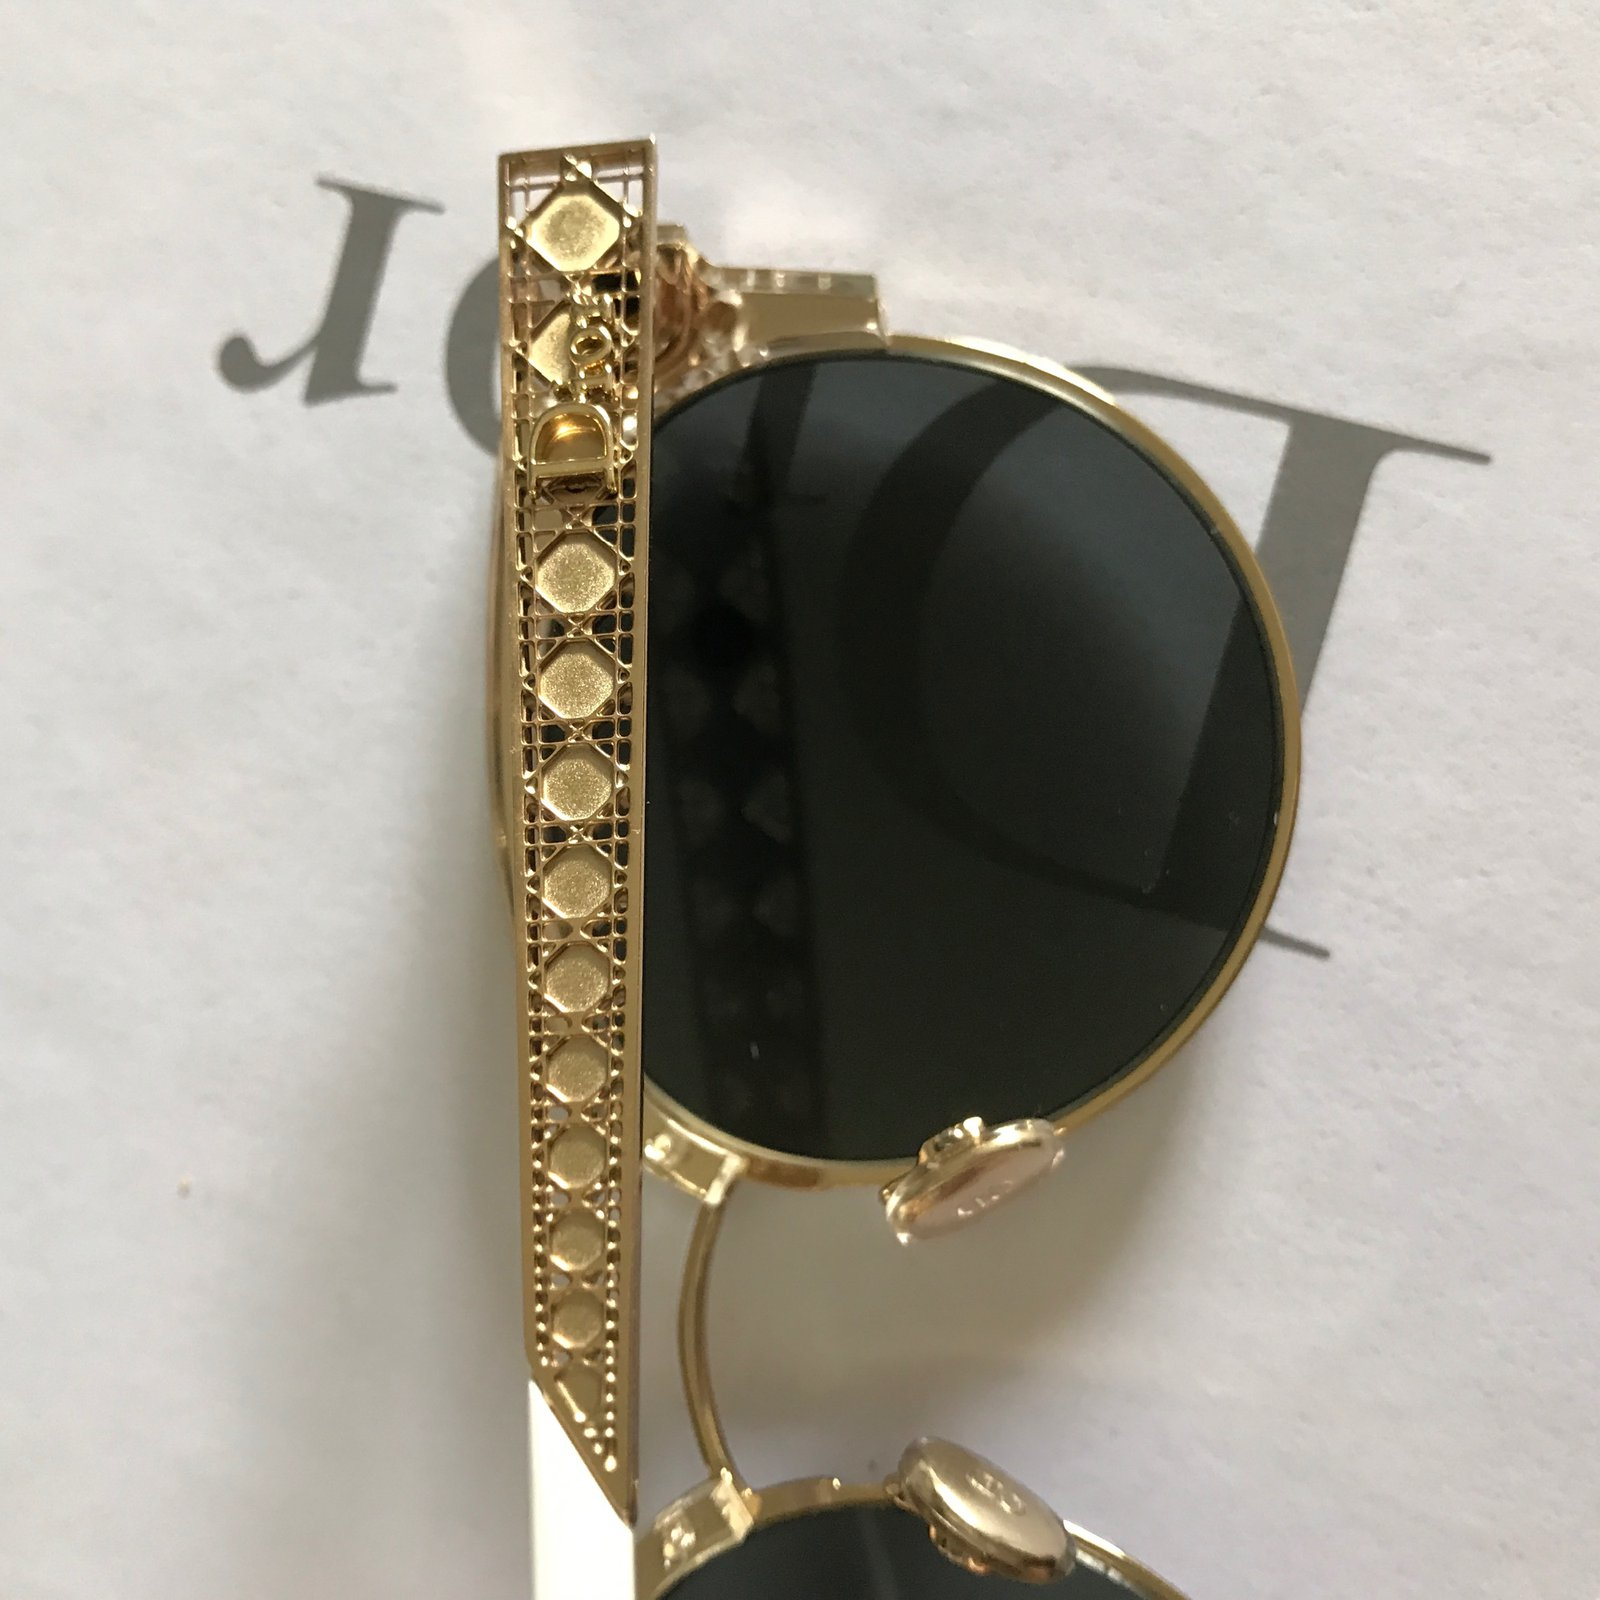 804d29c336 Christian Dior Dior diorama mini Sunglasses Metal Golden ref.45520 - Joli  Closet